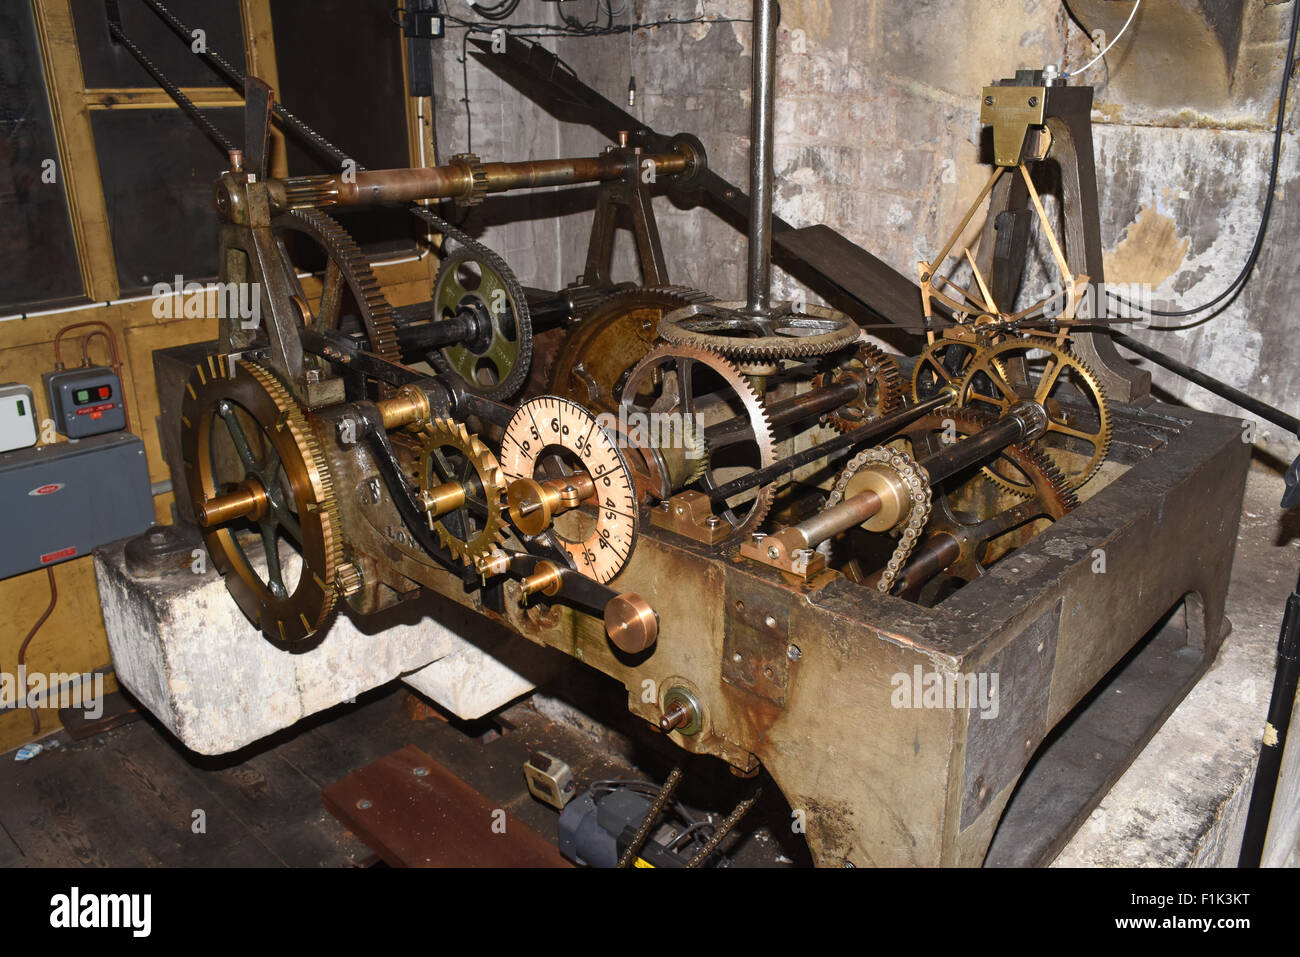 leeds town hall clock mechanism made by f. dent of london in 1859 , leeds yorkshire united kingdom - Stock Image